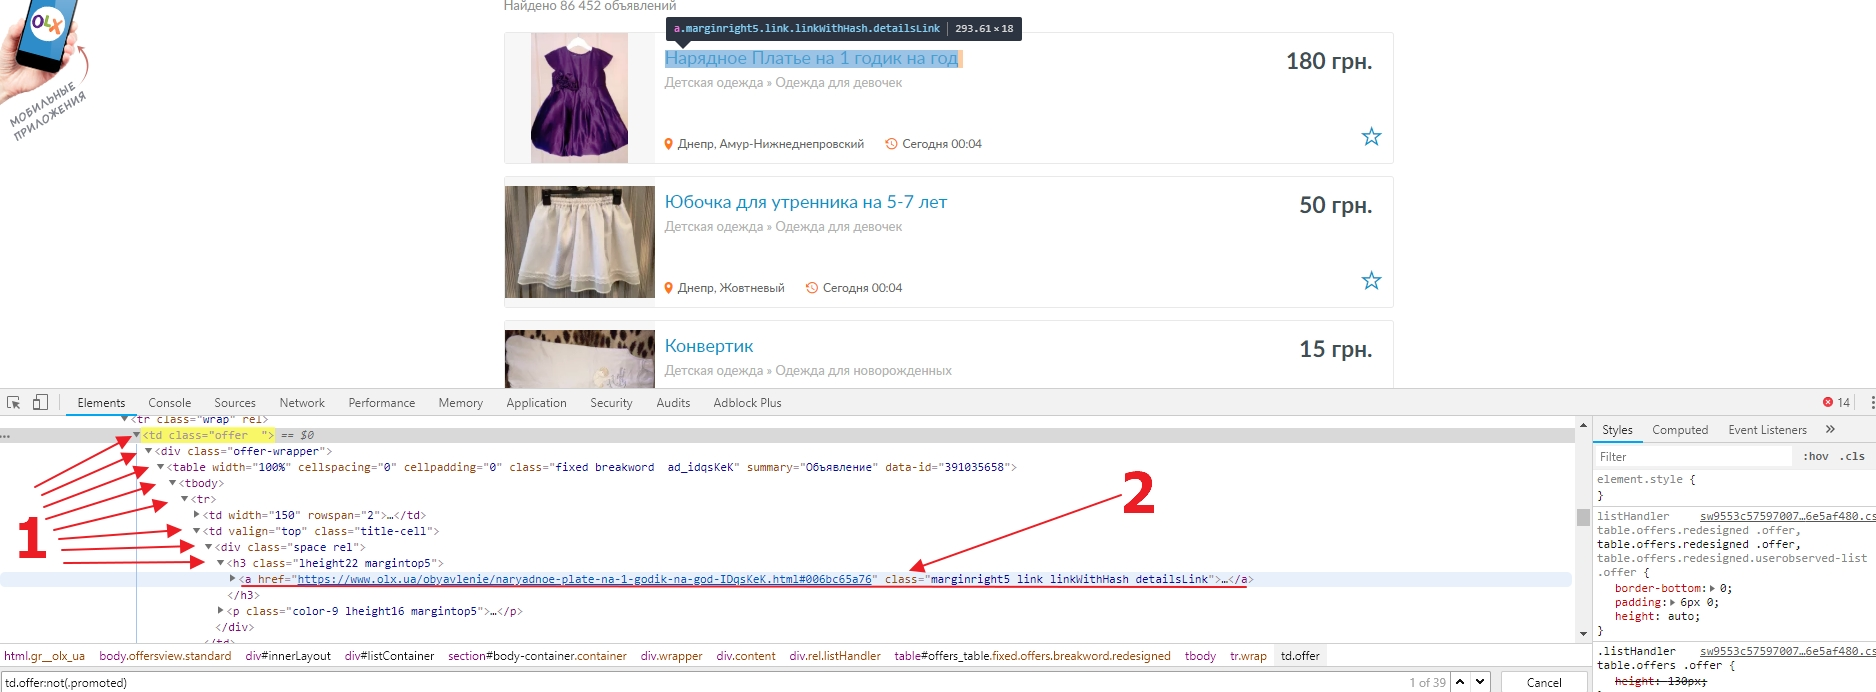 OLX: Finding links to the ad pages